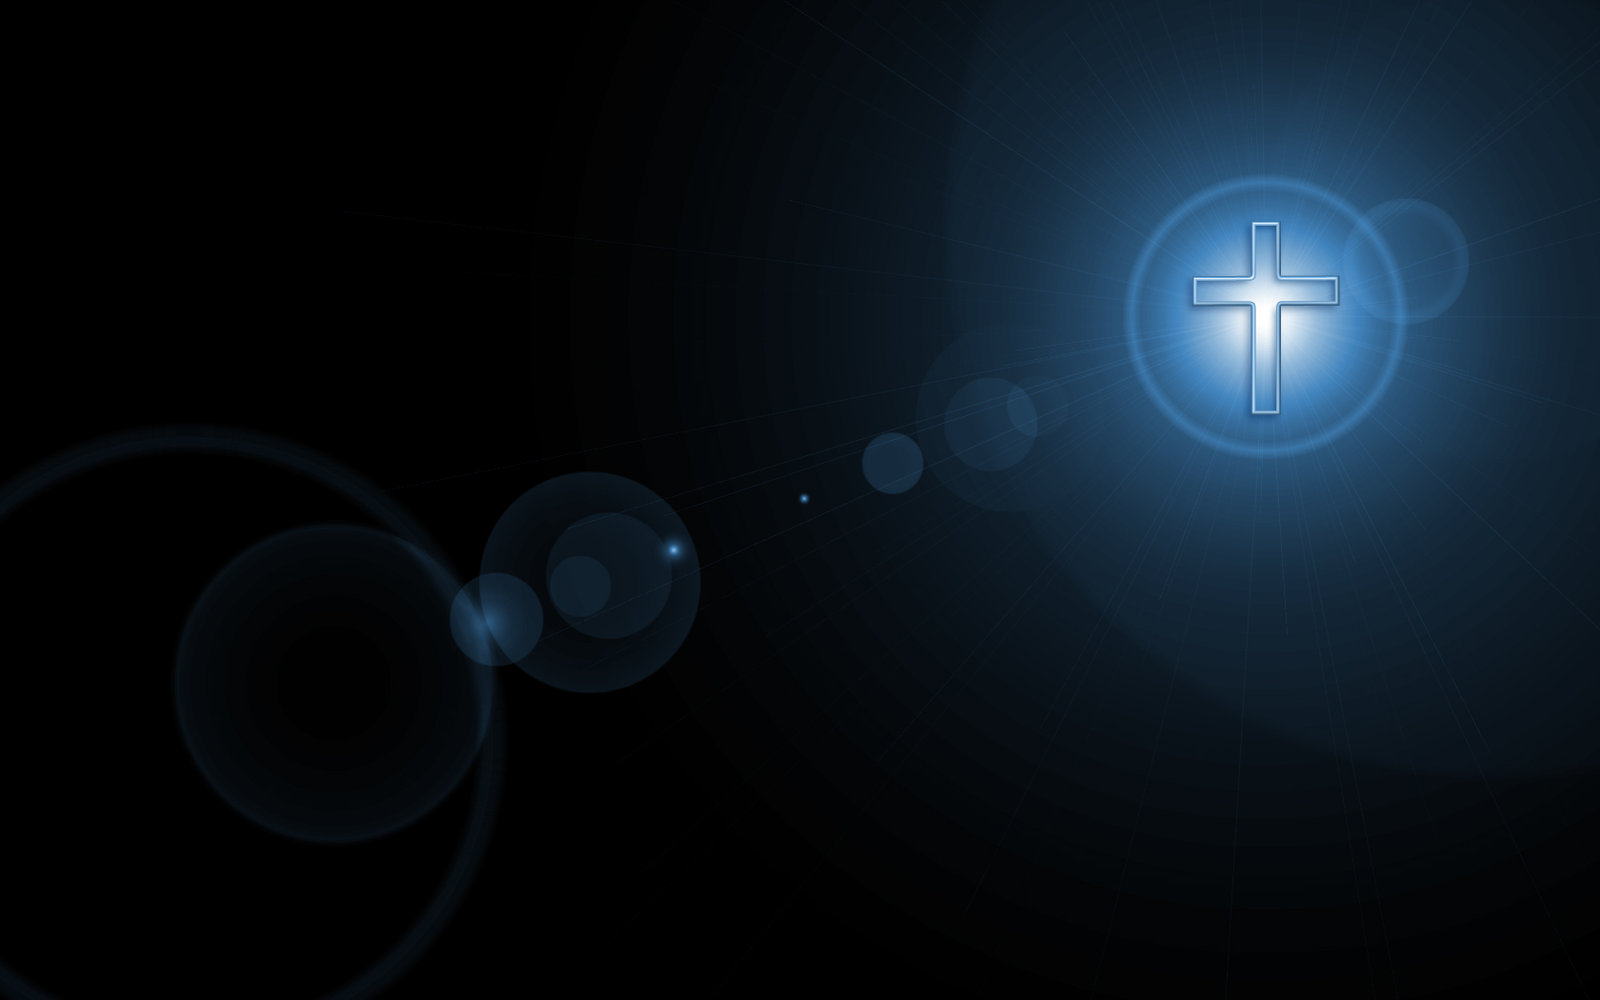 Cross wallpaper Wallpaper Wide HD 1600x1000